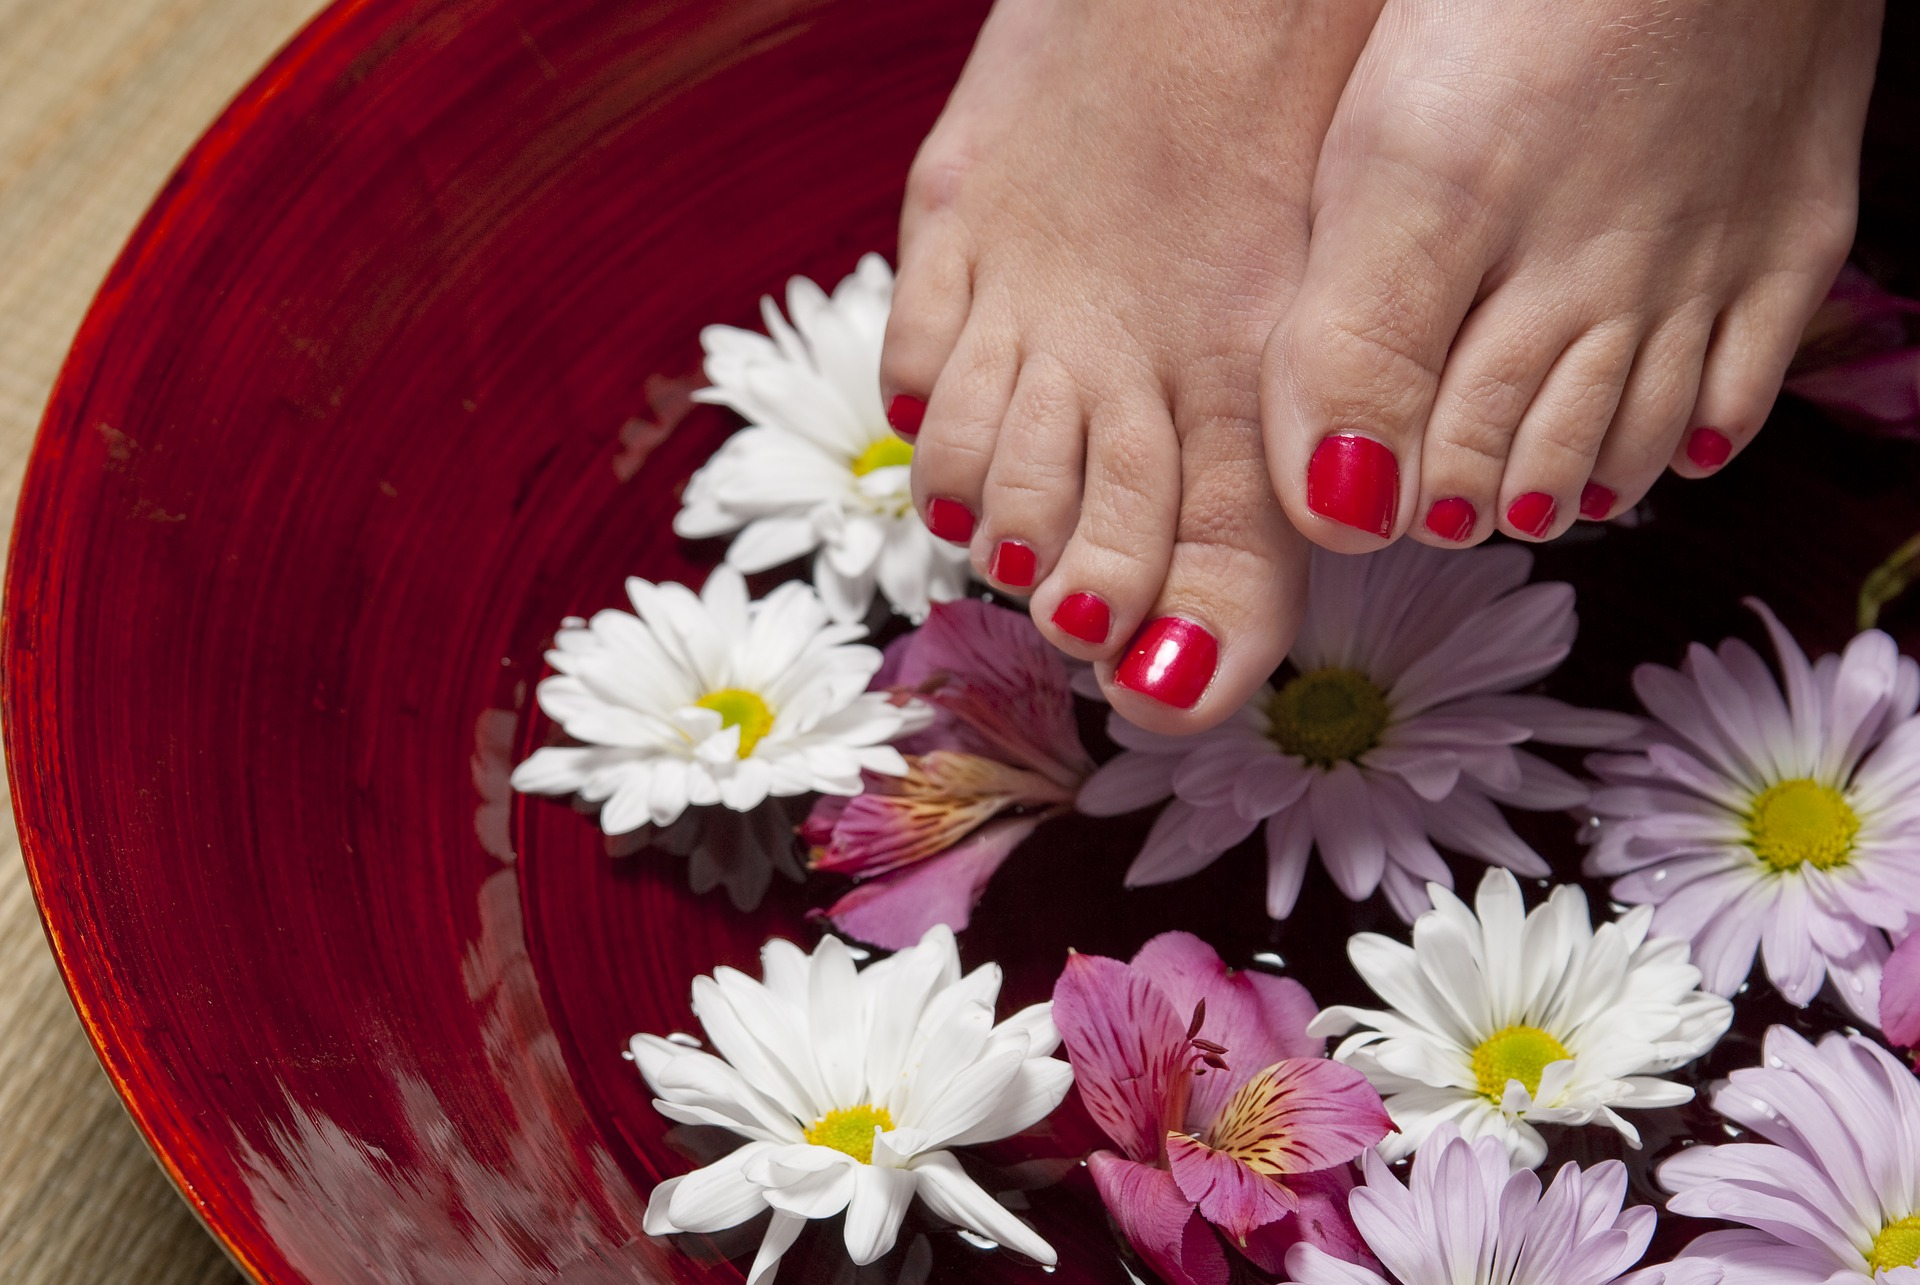 Step by Step Guide to DIY Pedicure at Home in Easy Steps